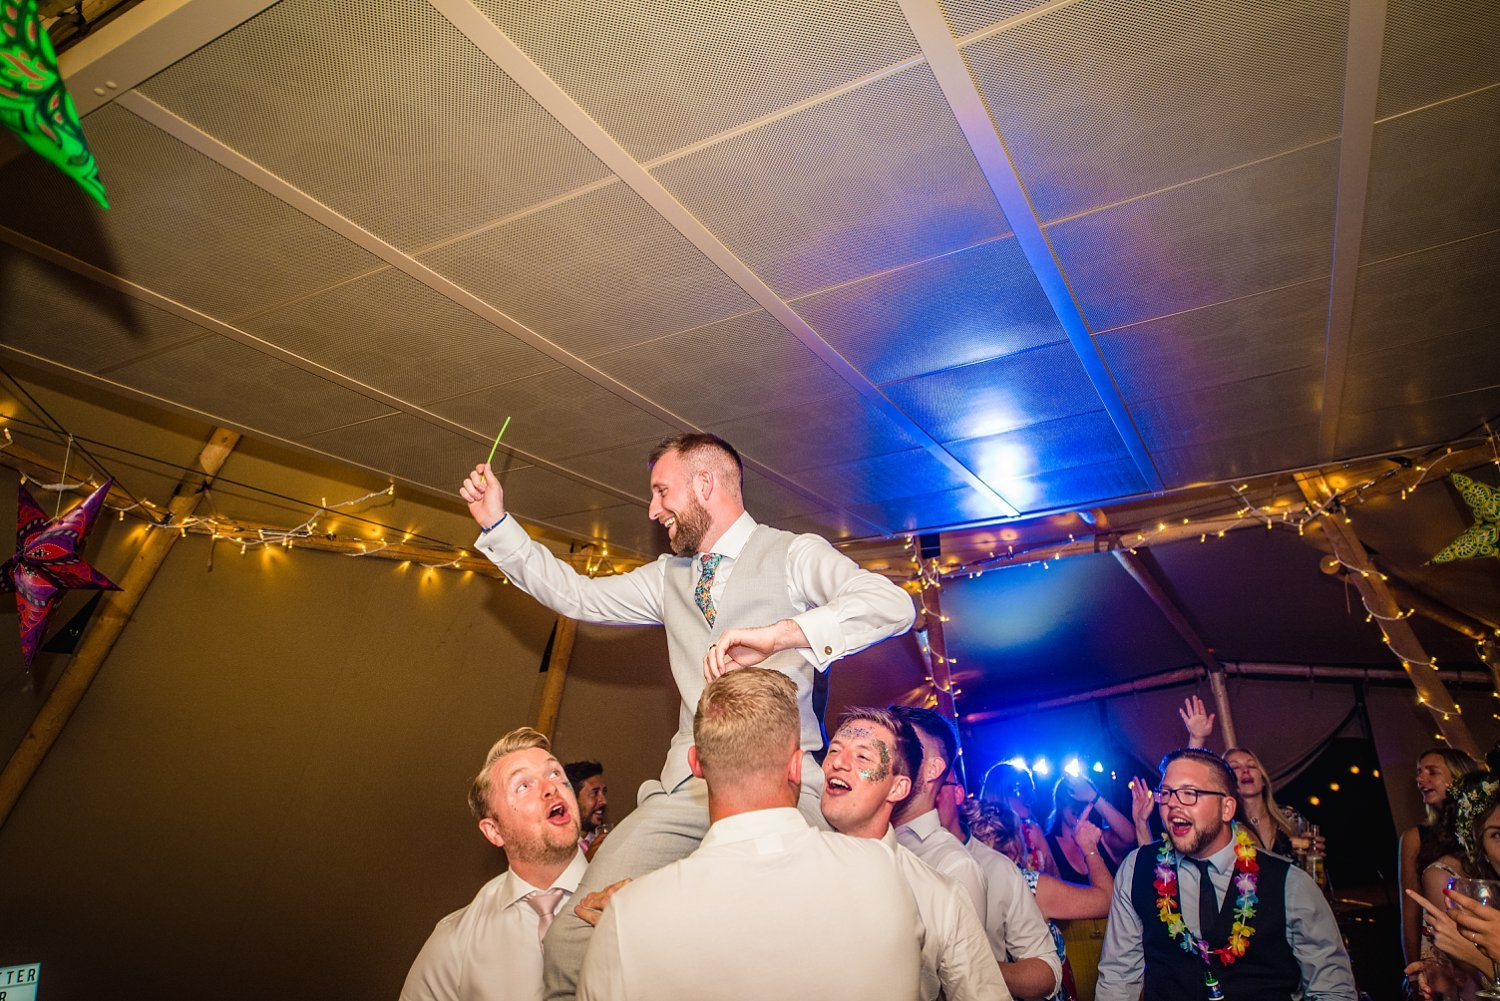 Farnham Wedding Photographer - groom has been lifted by his friends